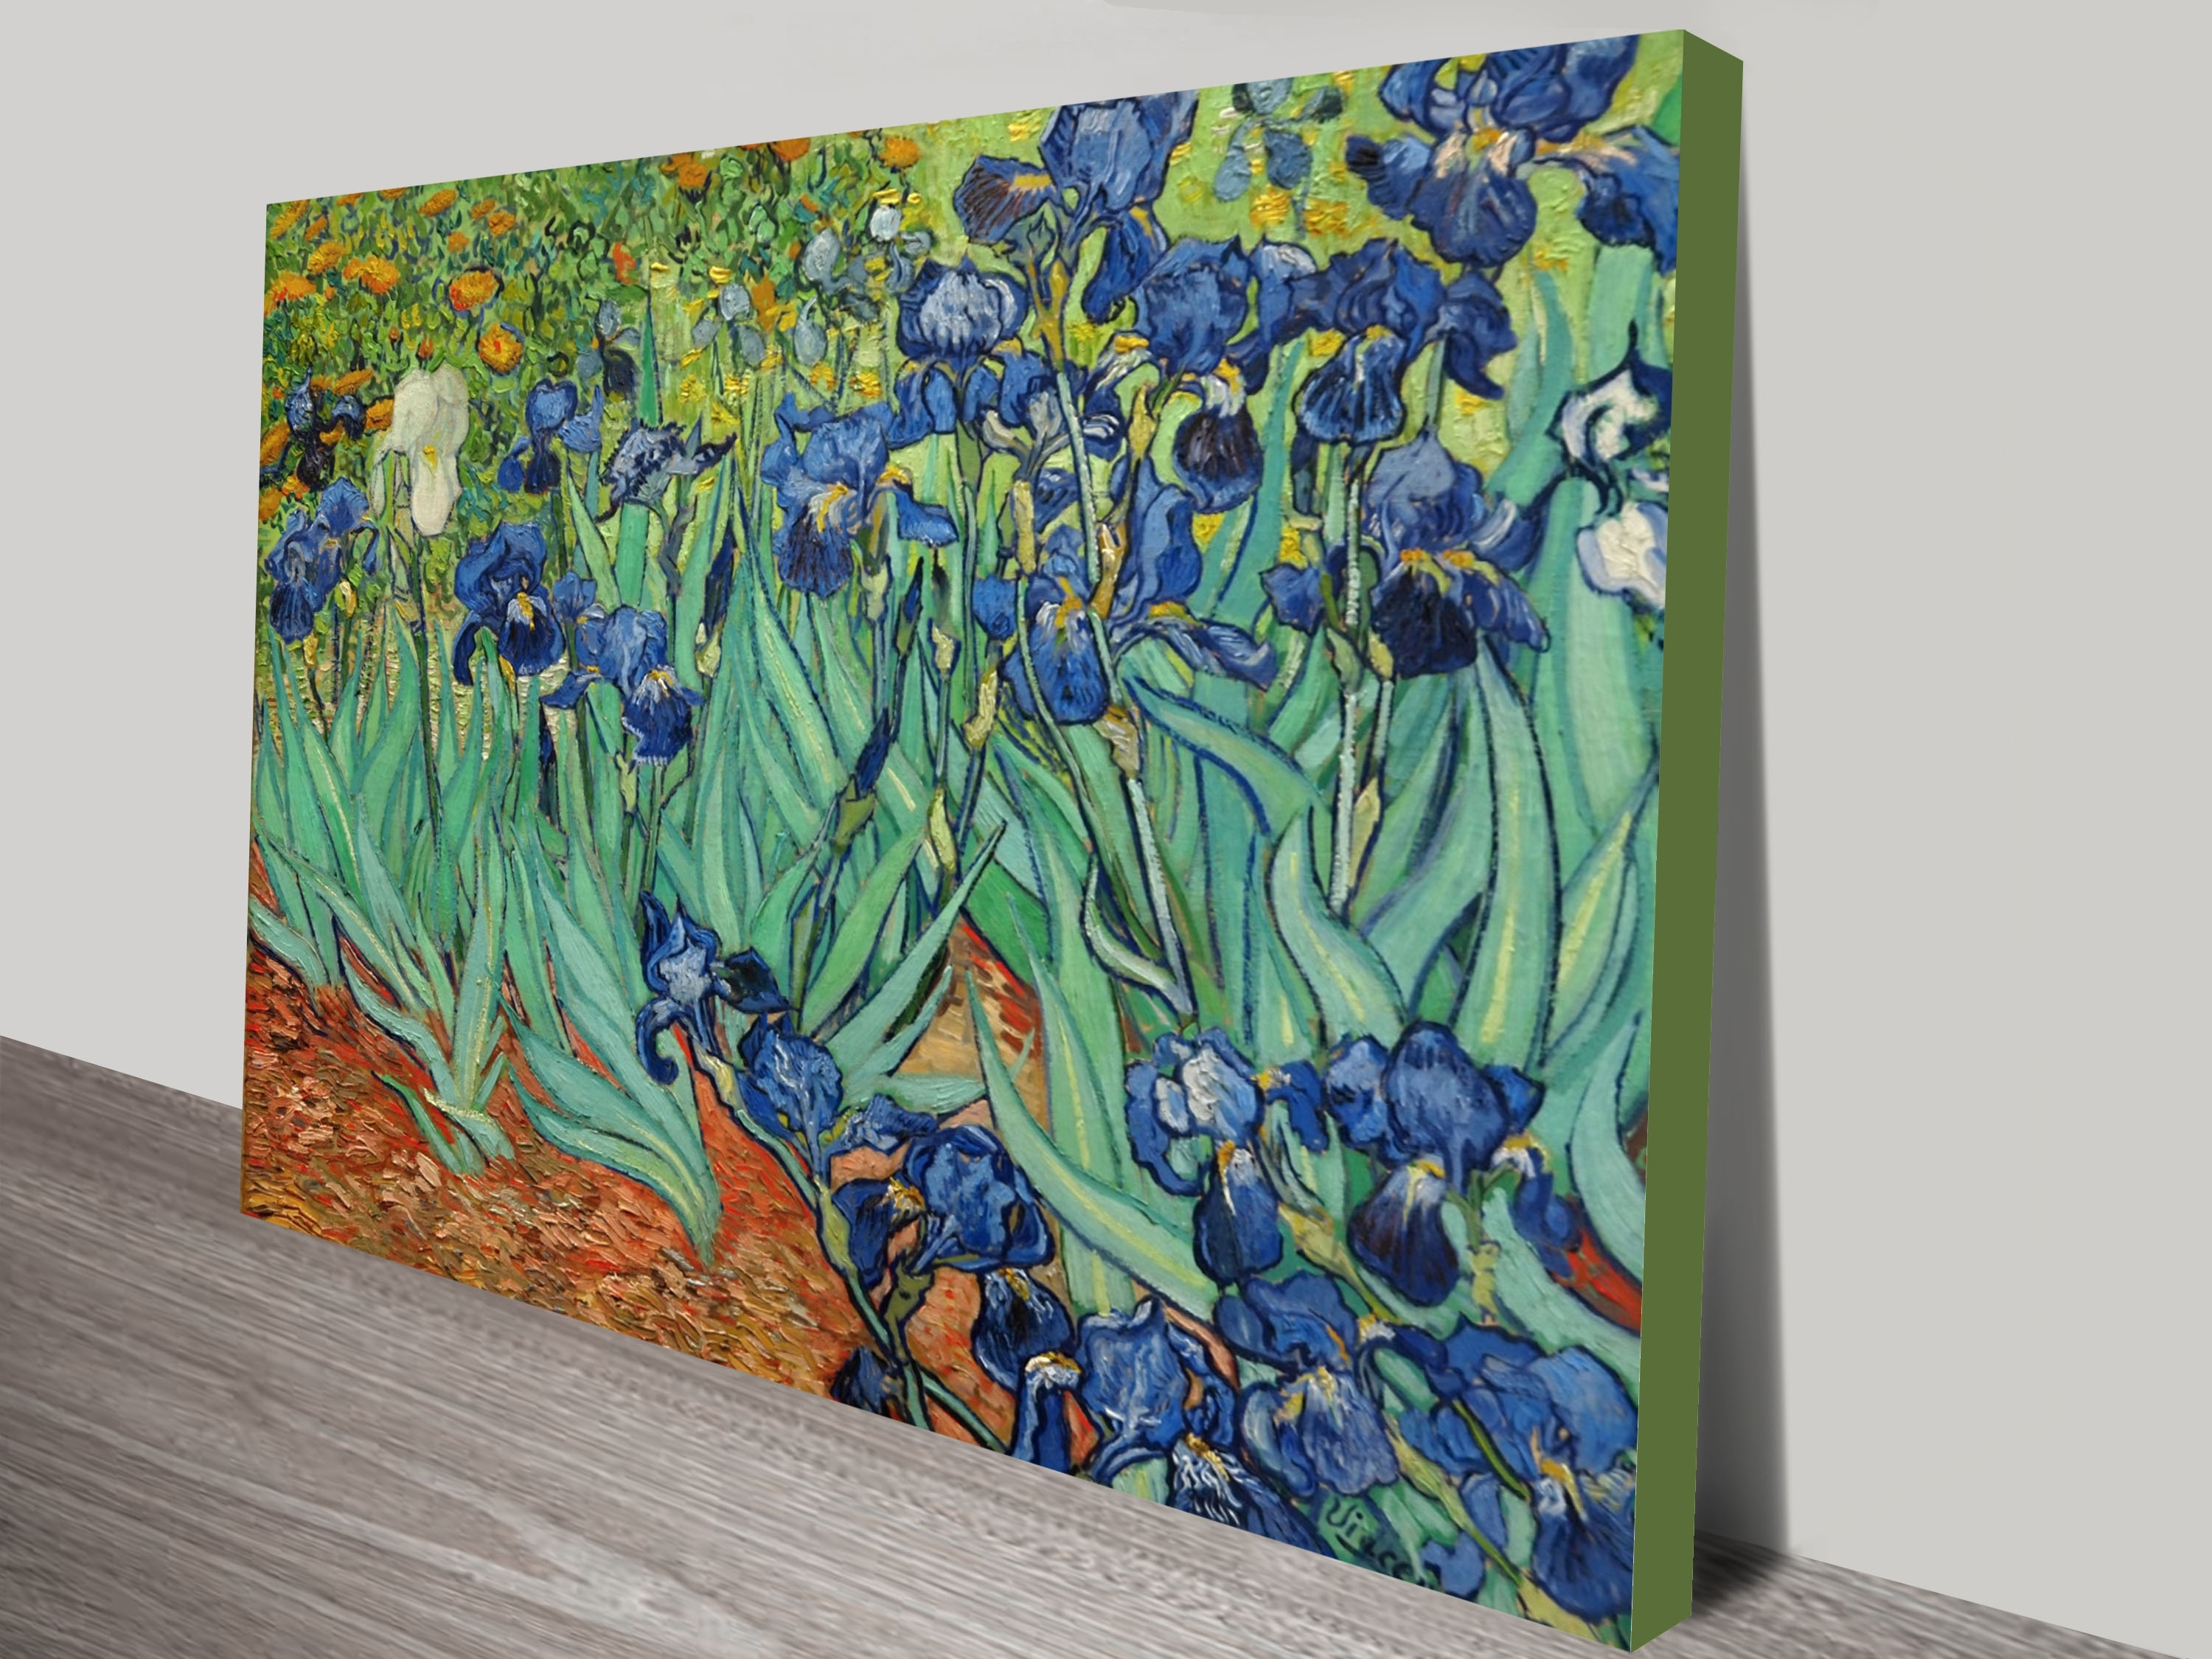 Irisesvincent Van Gogh Canvas Wall Art Print Perth Inside Most Recent Vincent Van Gogh Wall Art (Gallery 2 of 20)